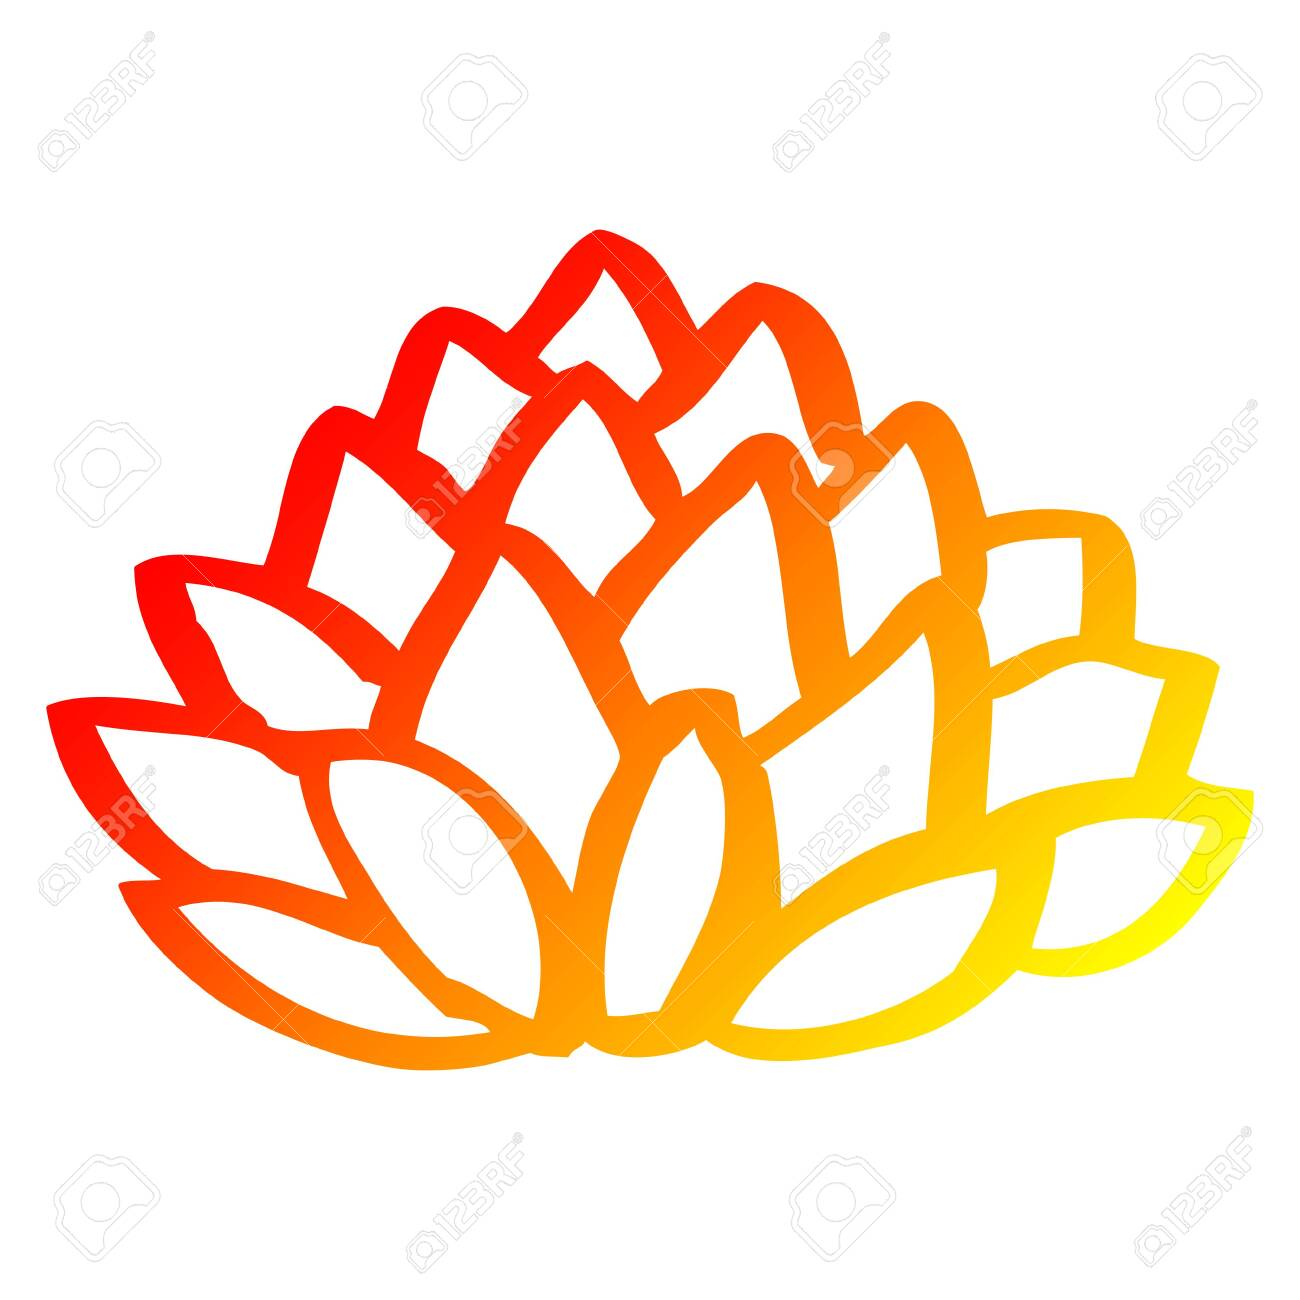 Warm Gradient Line Drawing Of A Cartoon Pile Of Leaves Royalty Free Cliparts Vectors And Stock Illustration Image 130180973